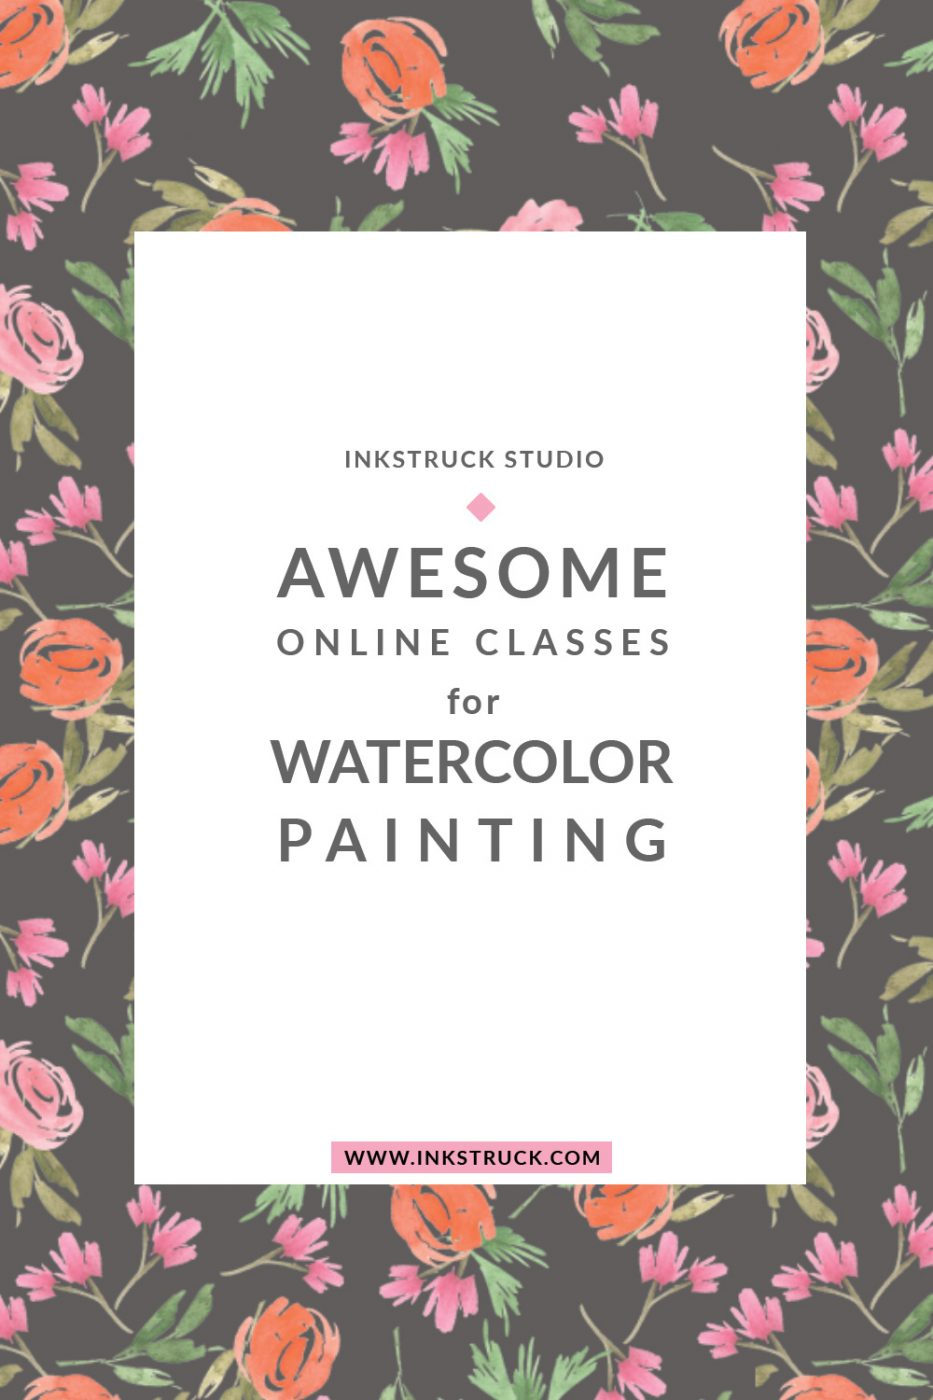 Learn the art of watercolor painting with these awesome online watercolor classes on Skillshare by Zakkiya Hamza of Inkstruck Studio